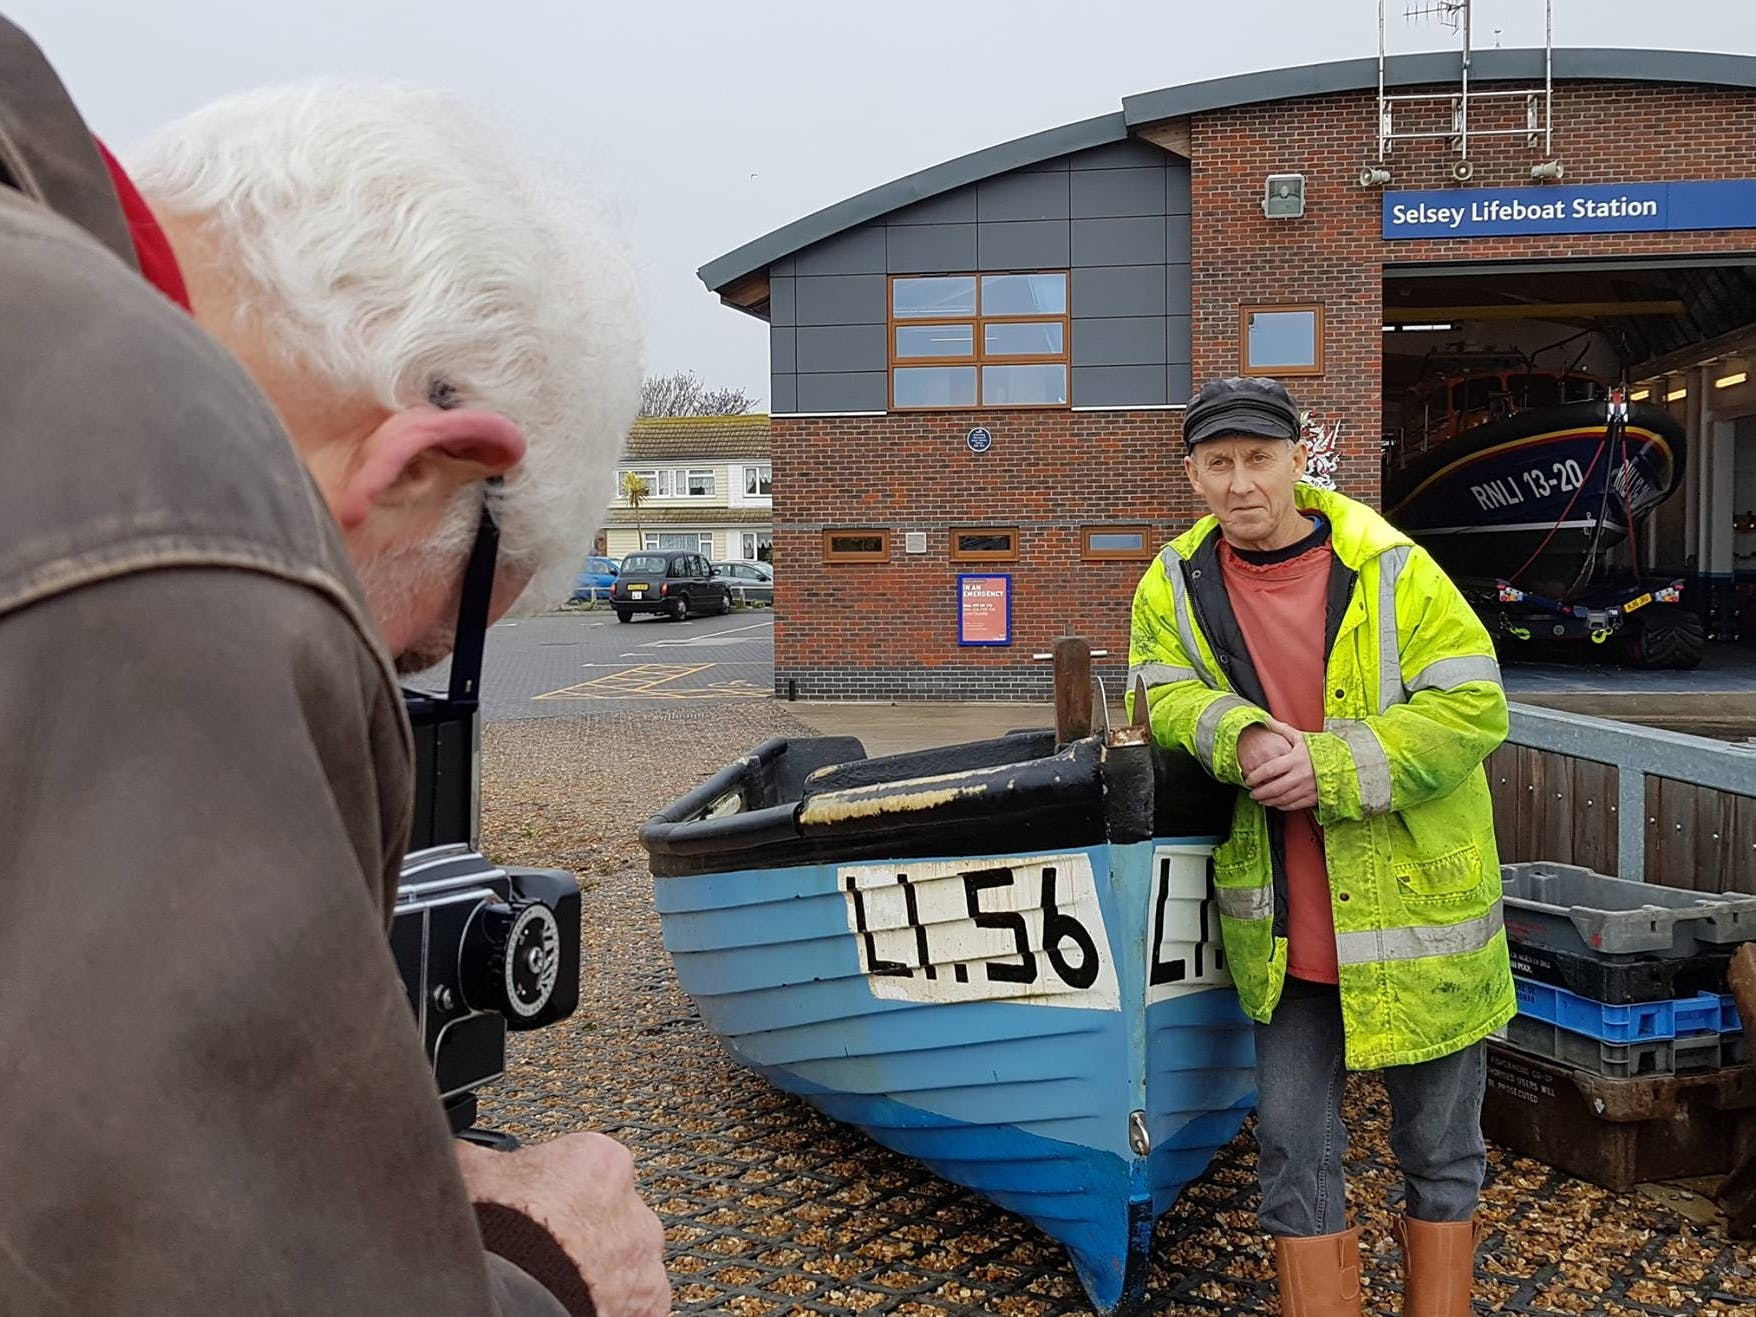 Gem, local fisherman being photographed during the Sea's the Day project outside the Selsey Lifeboat Station